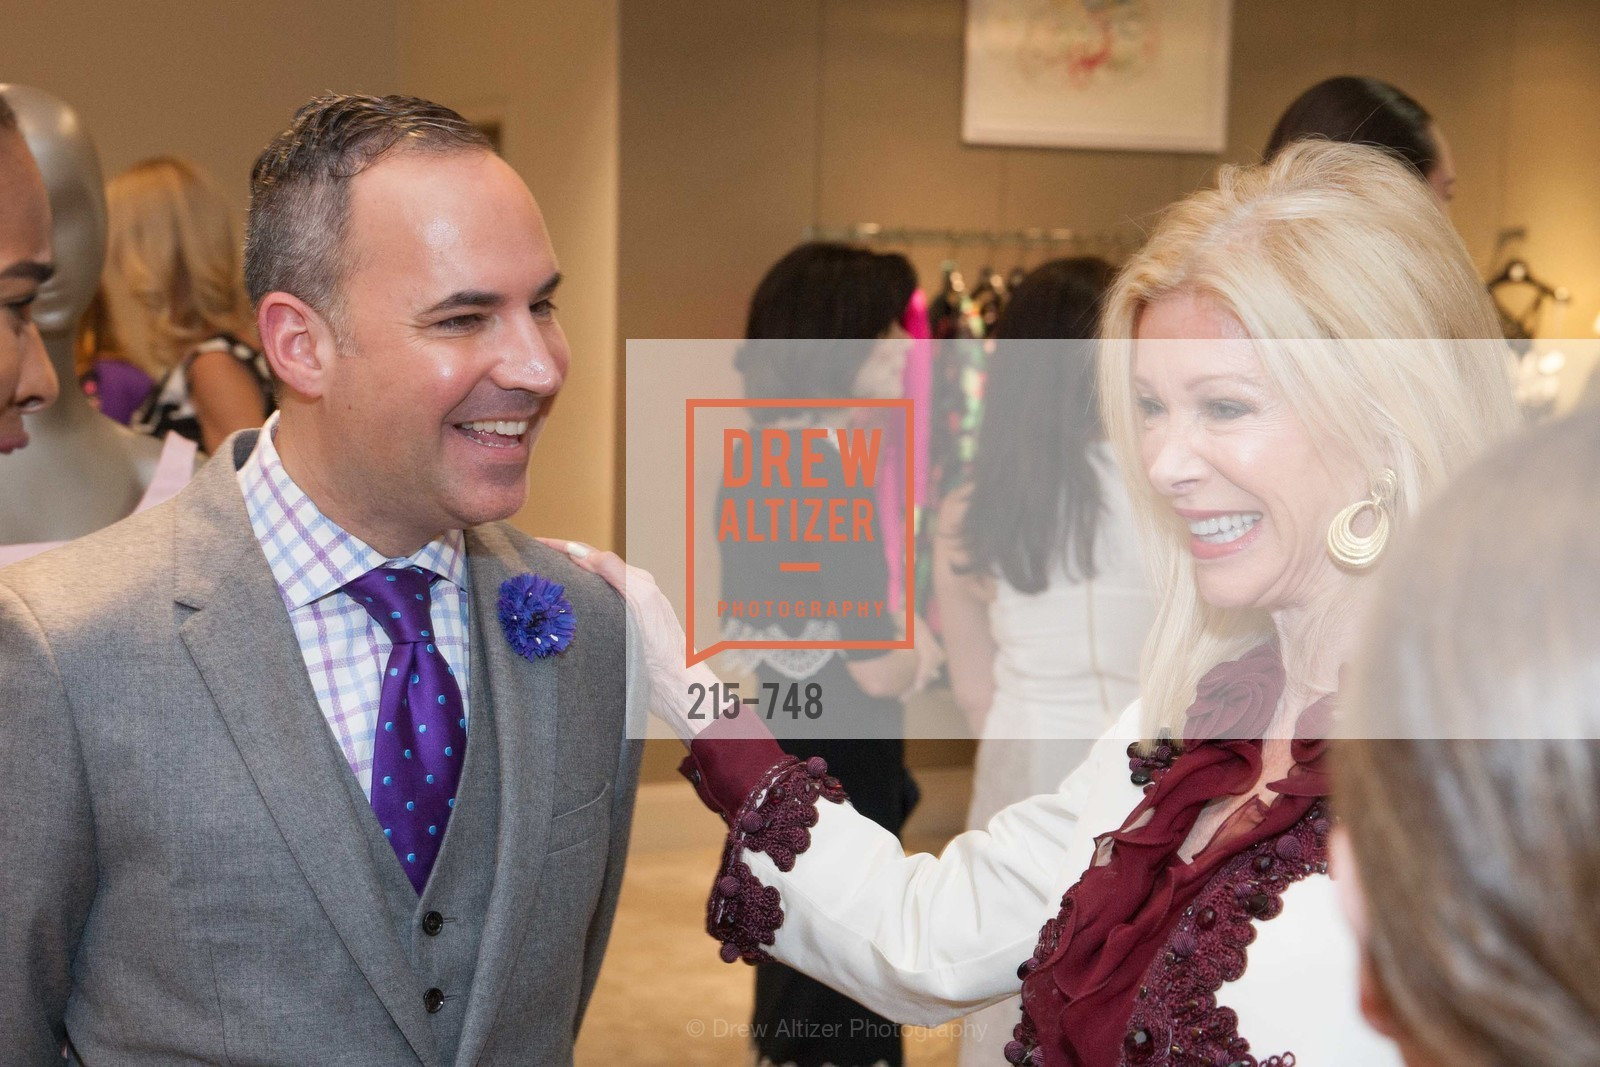 Robert Arnold-Kraft, Pamala Deikel, PETER COPPING'S Personal Appearance at SAKS FIFTH AVENUE, US, May 22nd, 2015,Drew Altizer, Drew Altizer Photography, full-service agency, private events, San Francisco photographer, photographer california